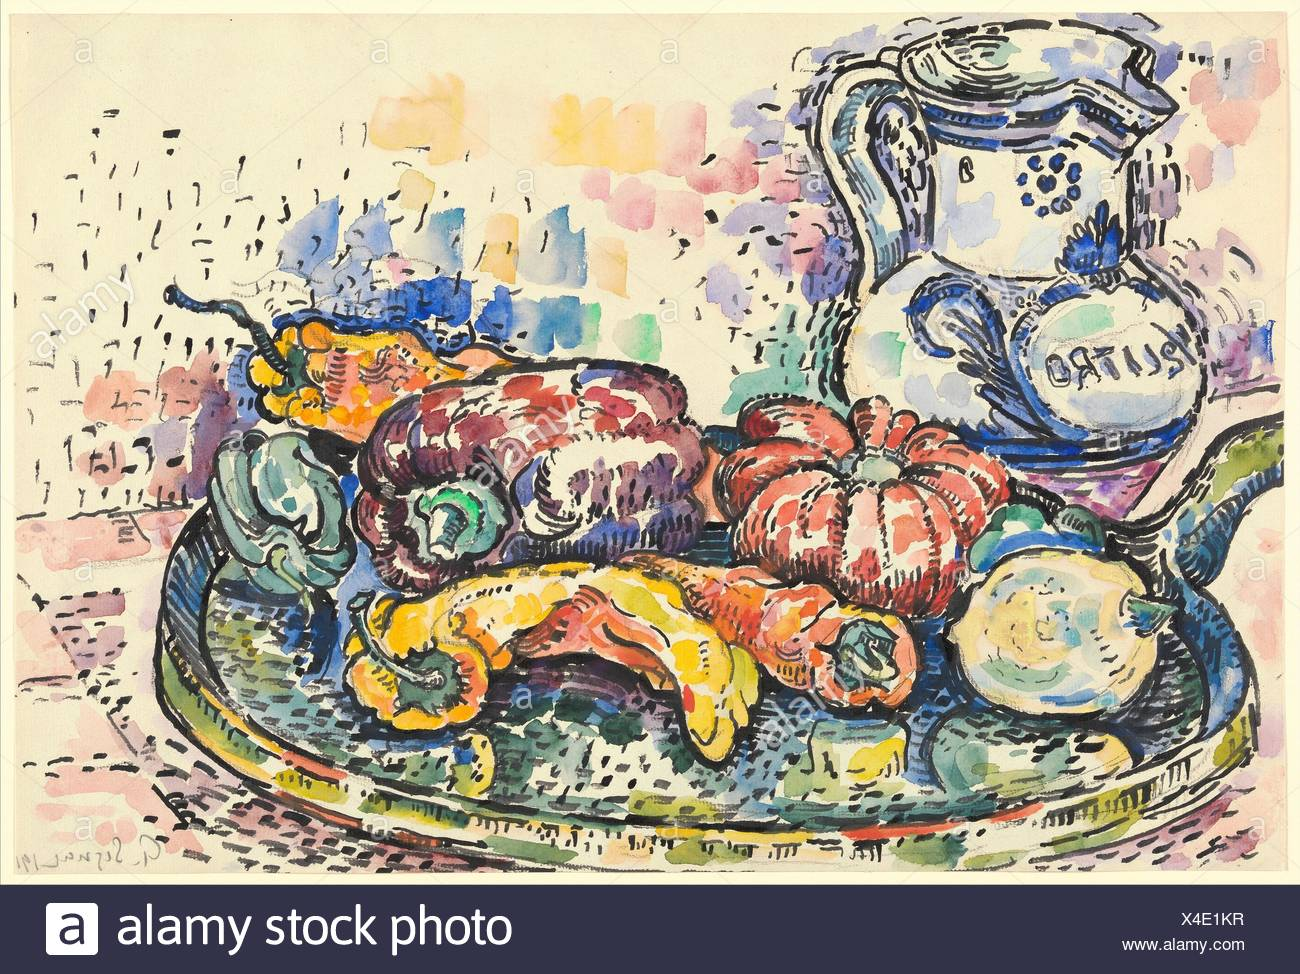 Still Life with Jug. Artist: Paul Signac (French, Paris 1863-1935 Paris); Date: 1919; Medium: Graphite and watercolor; Dimensions: 11 7/8 x 17 5/8 Stock Photo